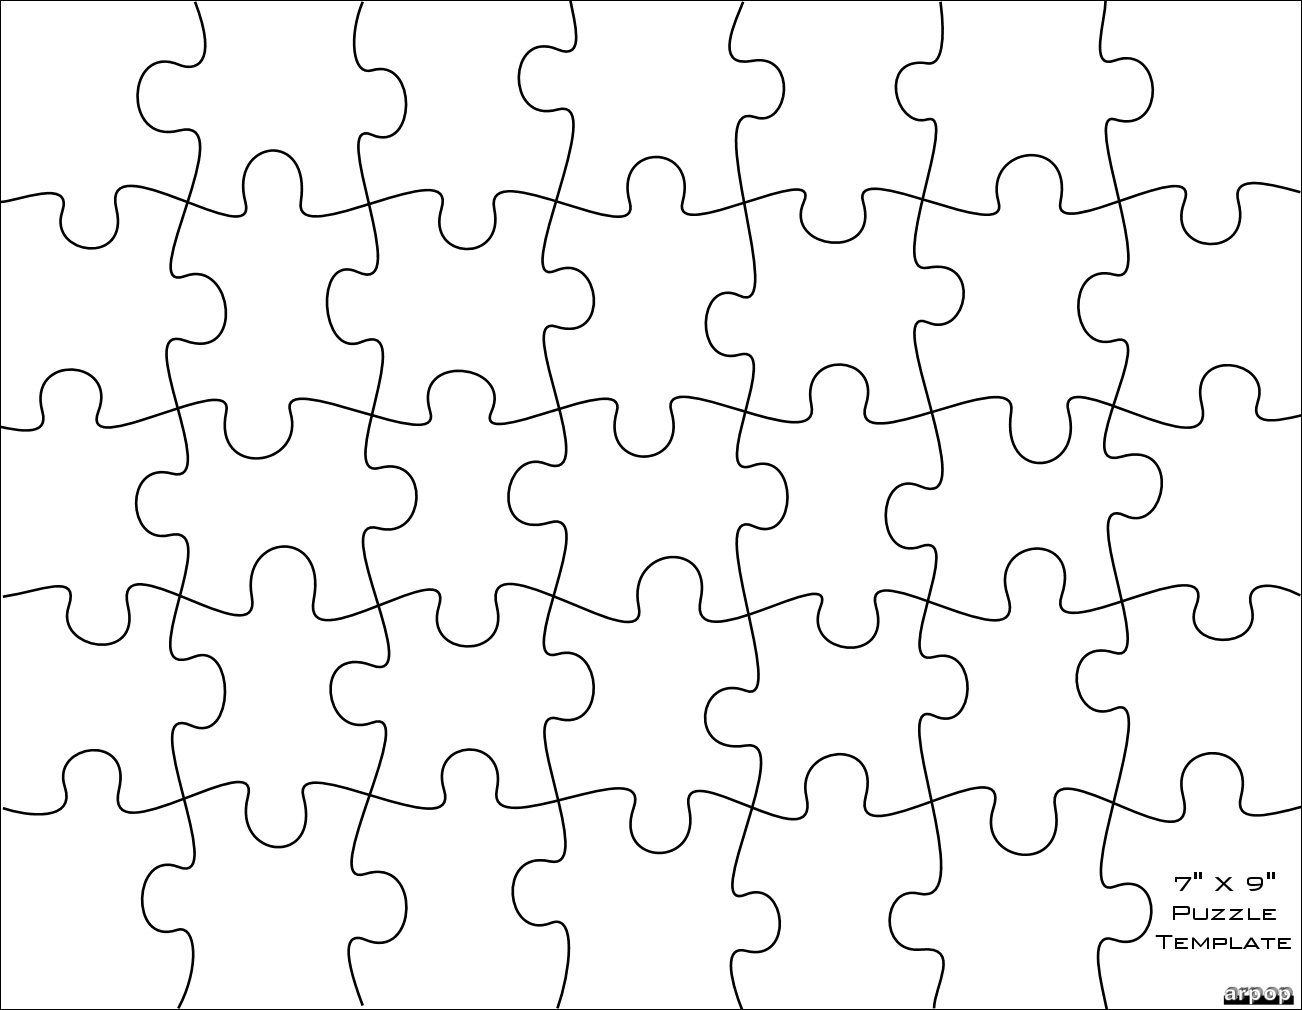 Jigsaw Pattern Templates. I Know I Want To Use It, But I Don't Know - T Puzzle Printable